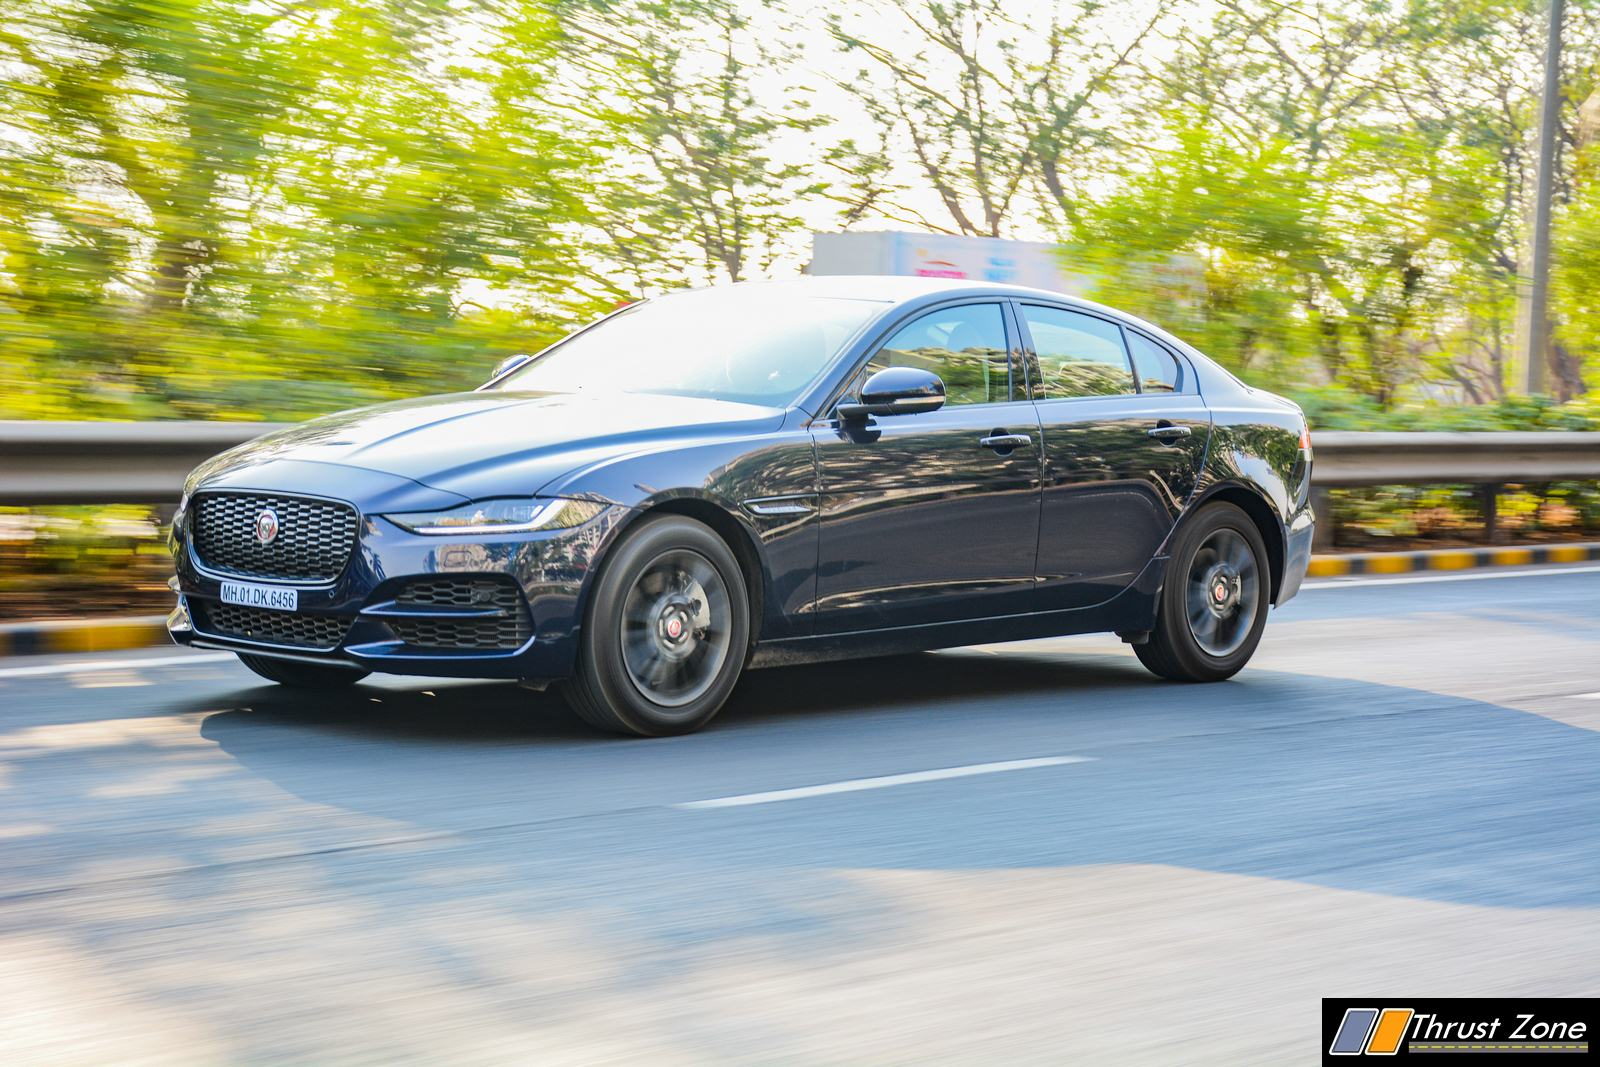 2020-Jaguar-XE-P250-India-Review-2